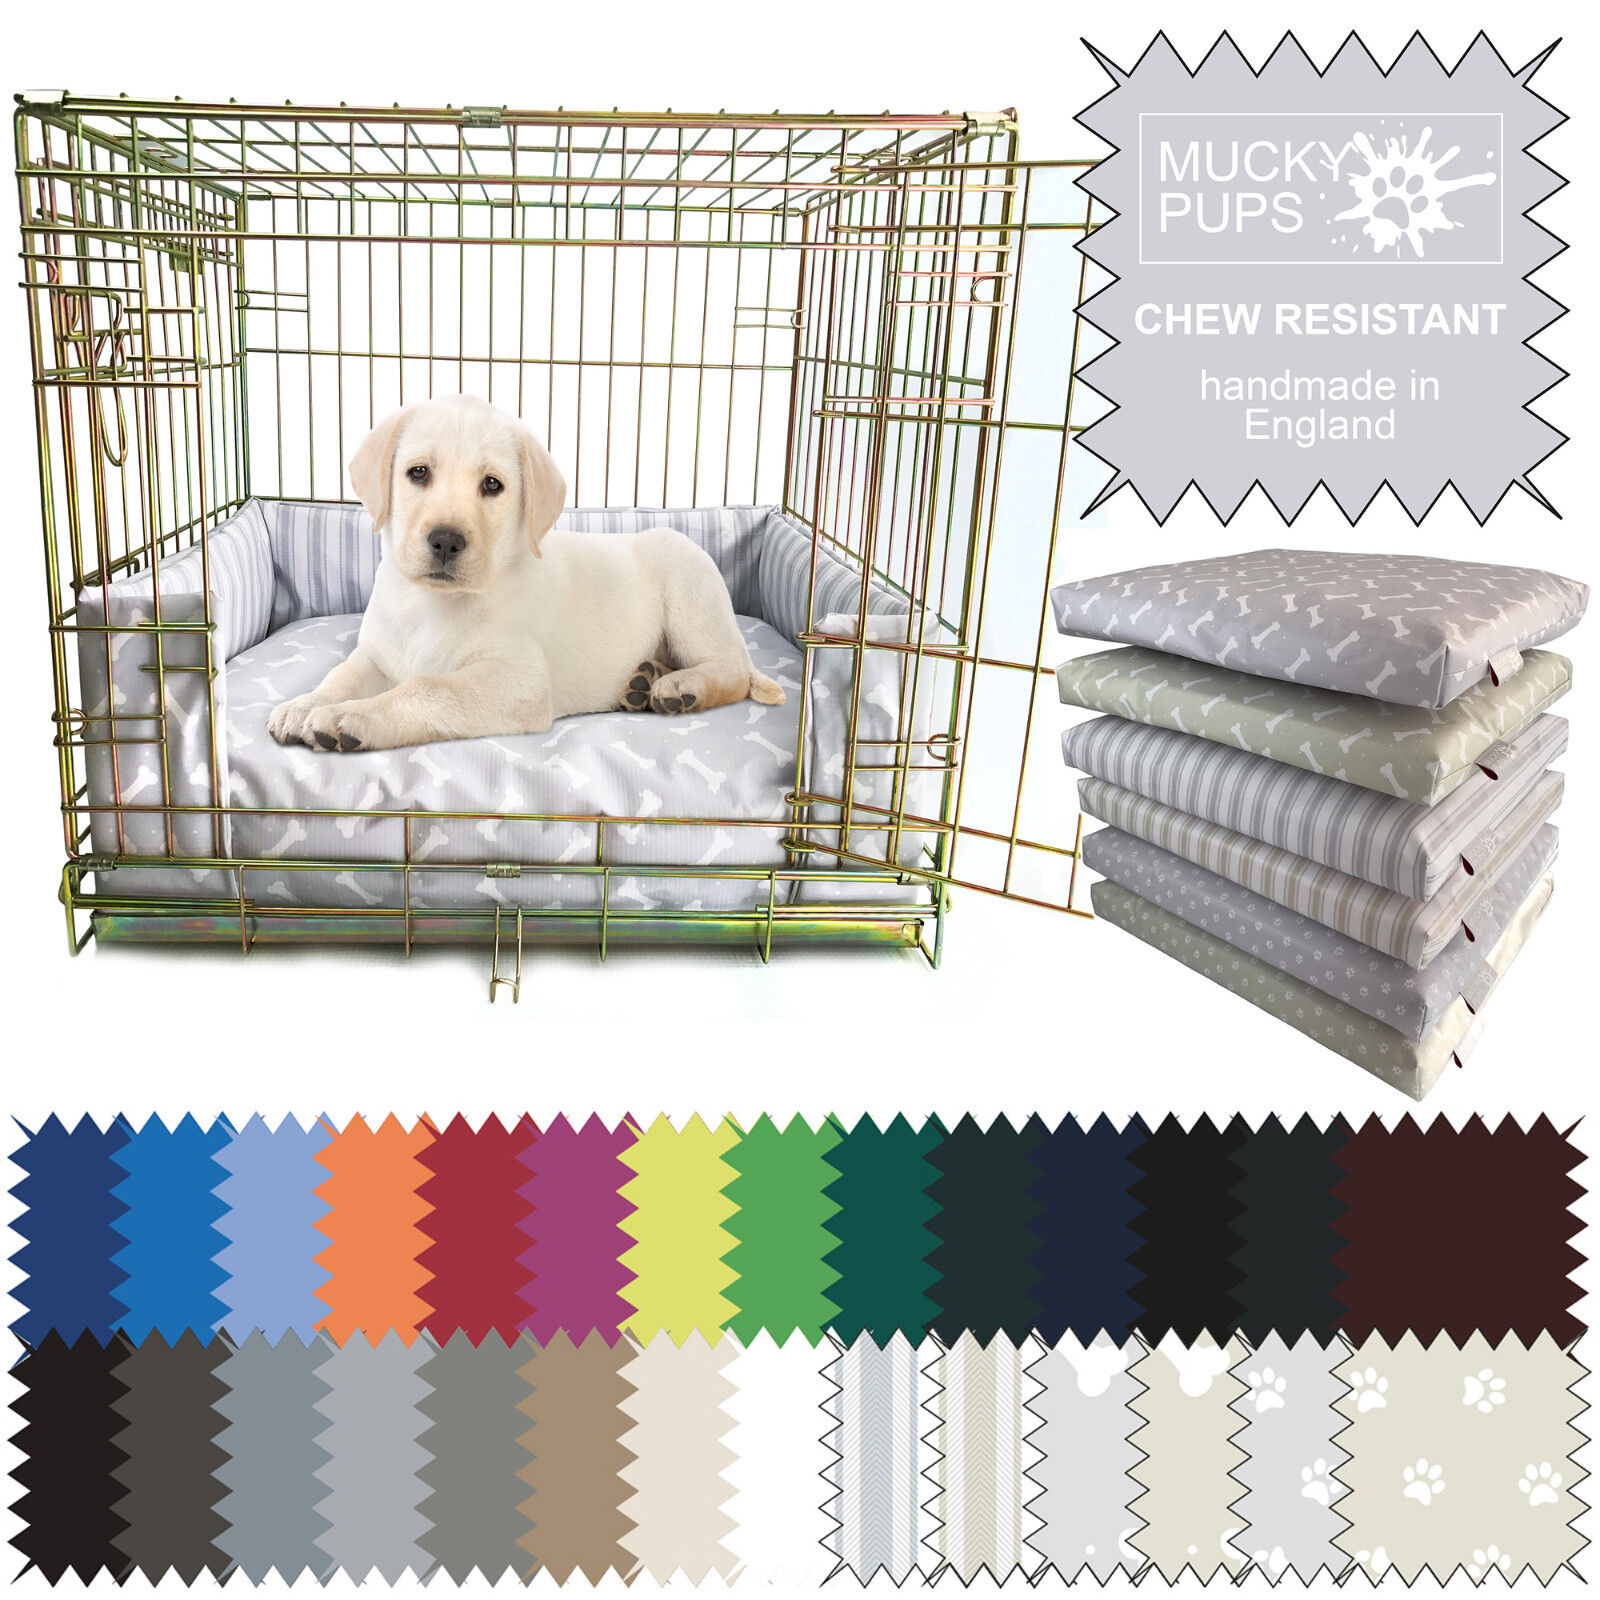 Dog Bed Chew Resistant Waterproof Puppy crate Pad/ Cushion/